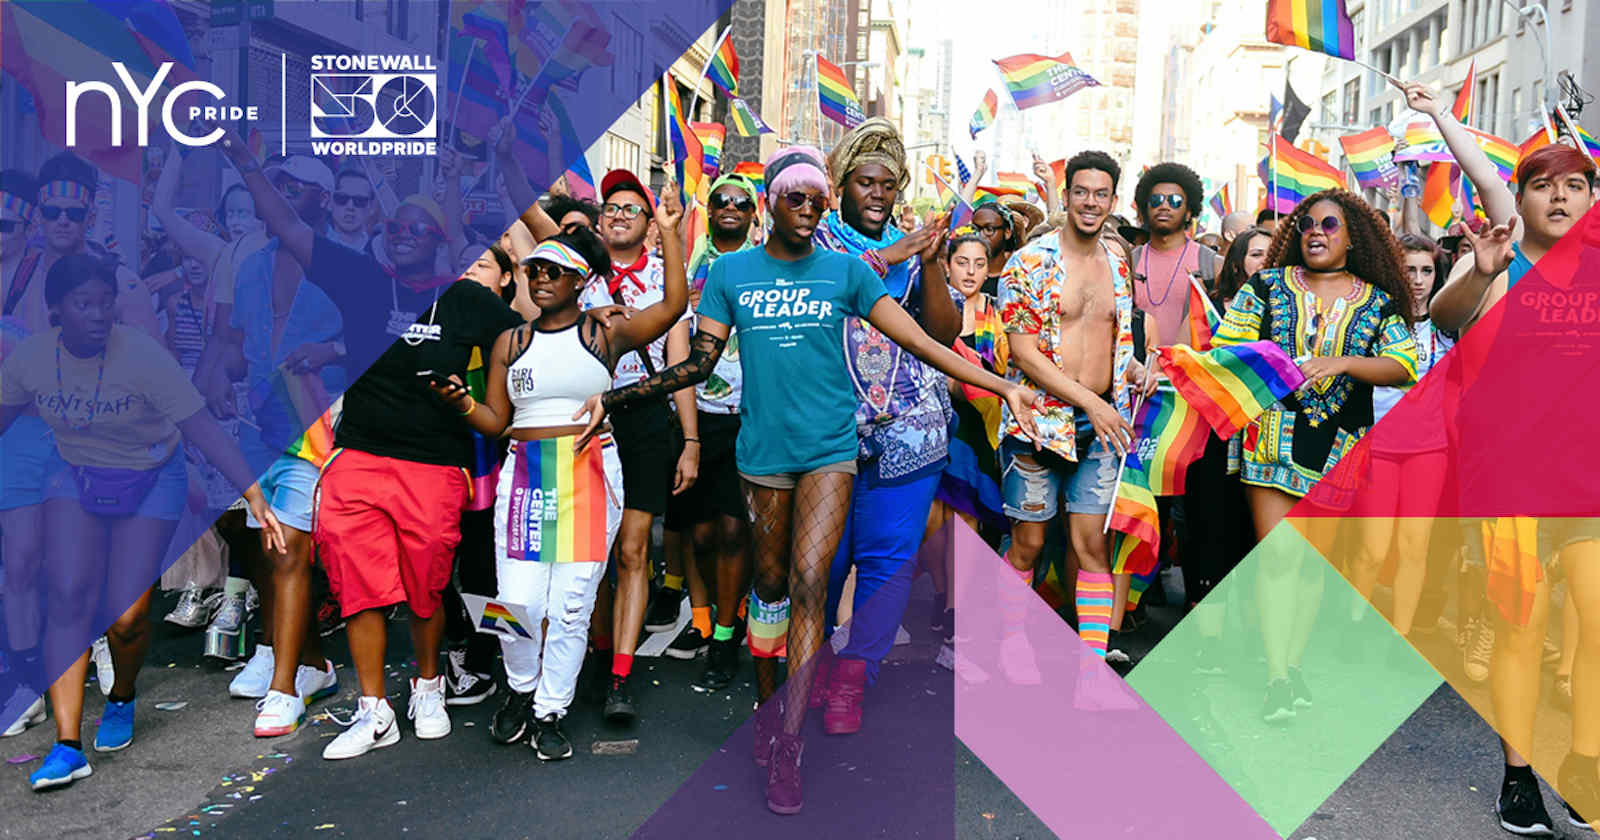 Coronavirus may be limiting how many people can gather, but it won't stop the 50th anniversary of Pride month! Join on these virtual pride parades!